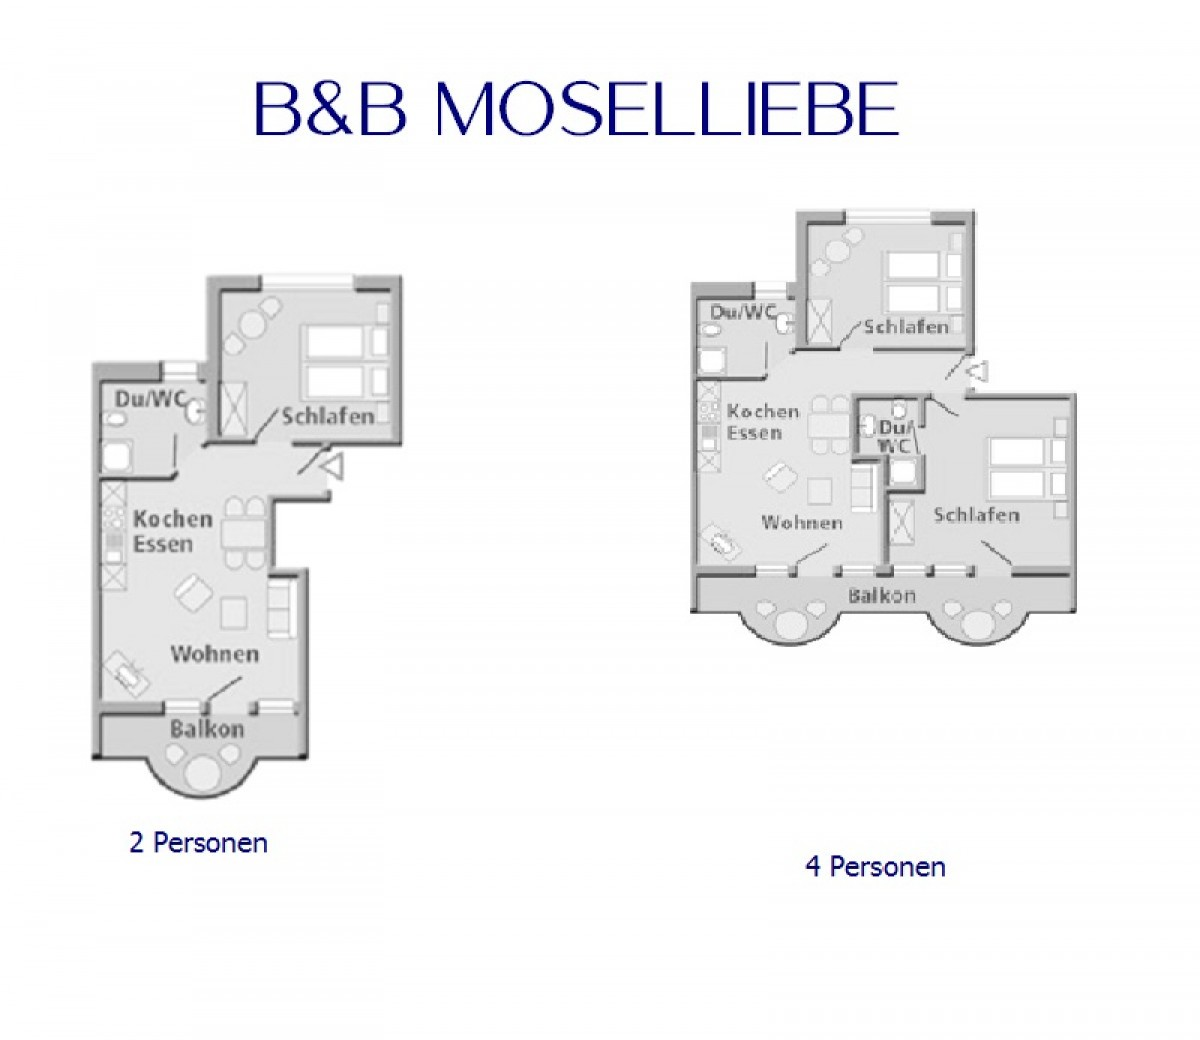 Image of Apartment. 2 pers. 1 bedroom and living room with balcony and view of the Moselle